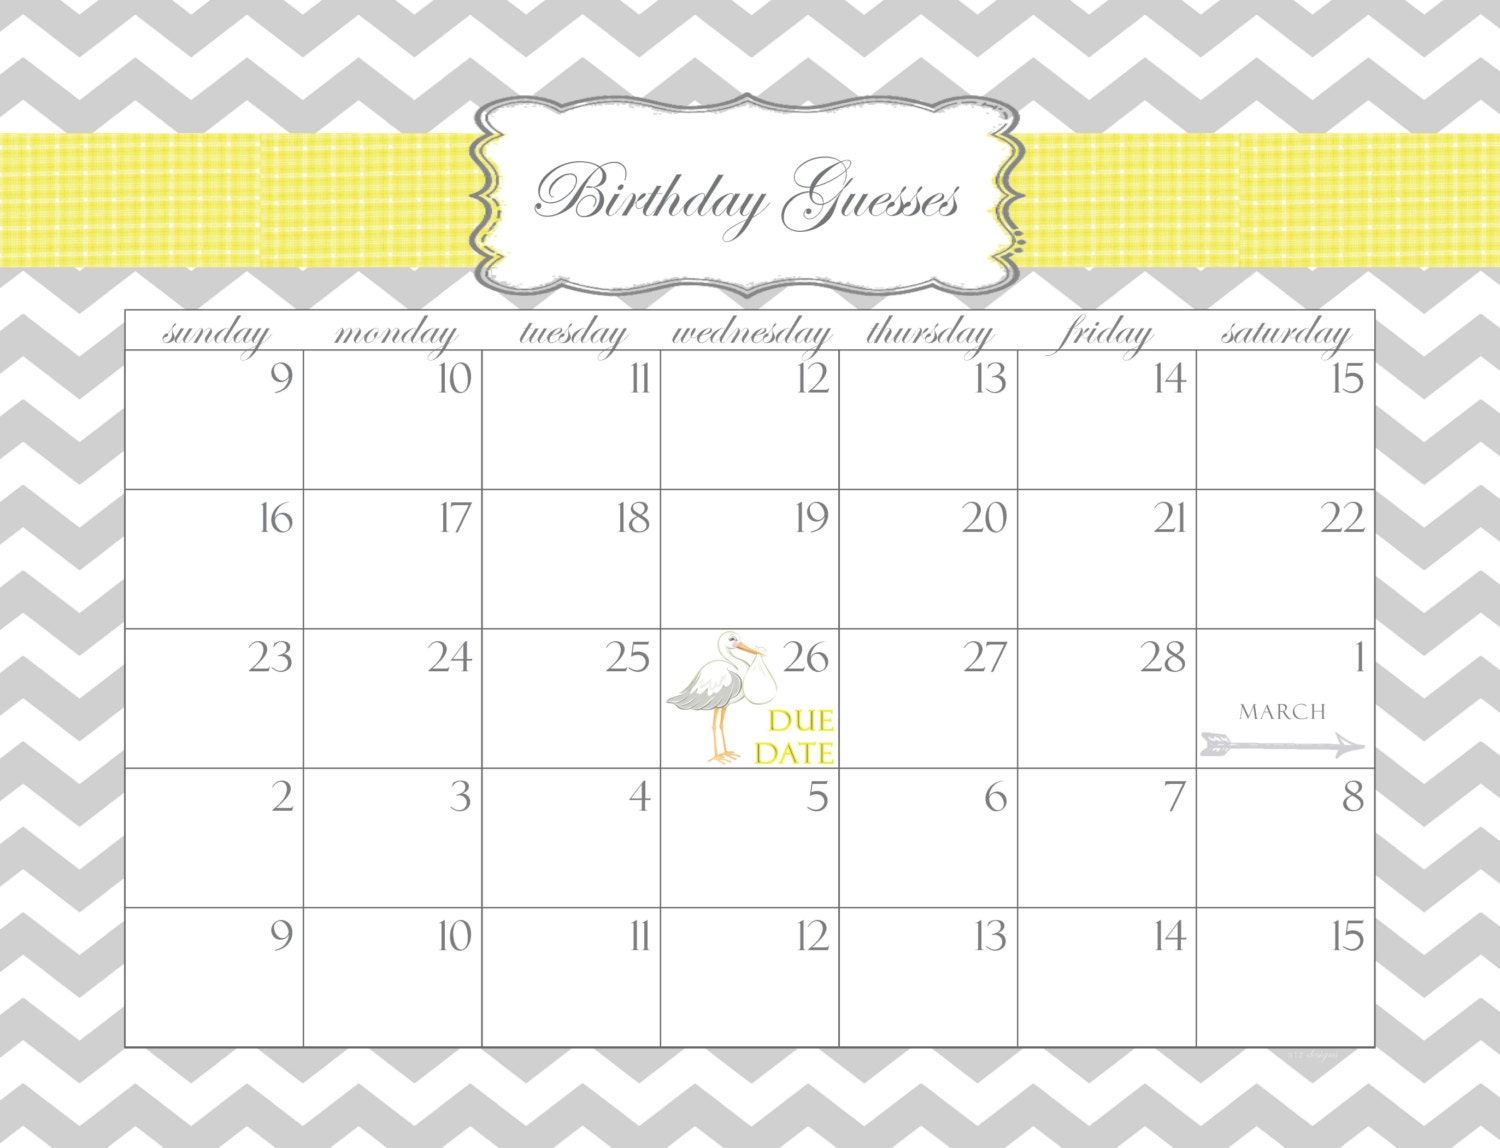 baby shower calendar printable pdf birthday guesses